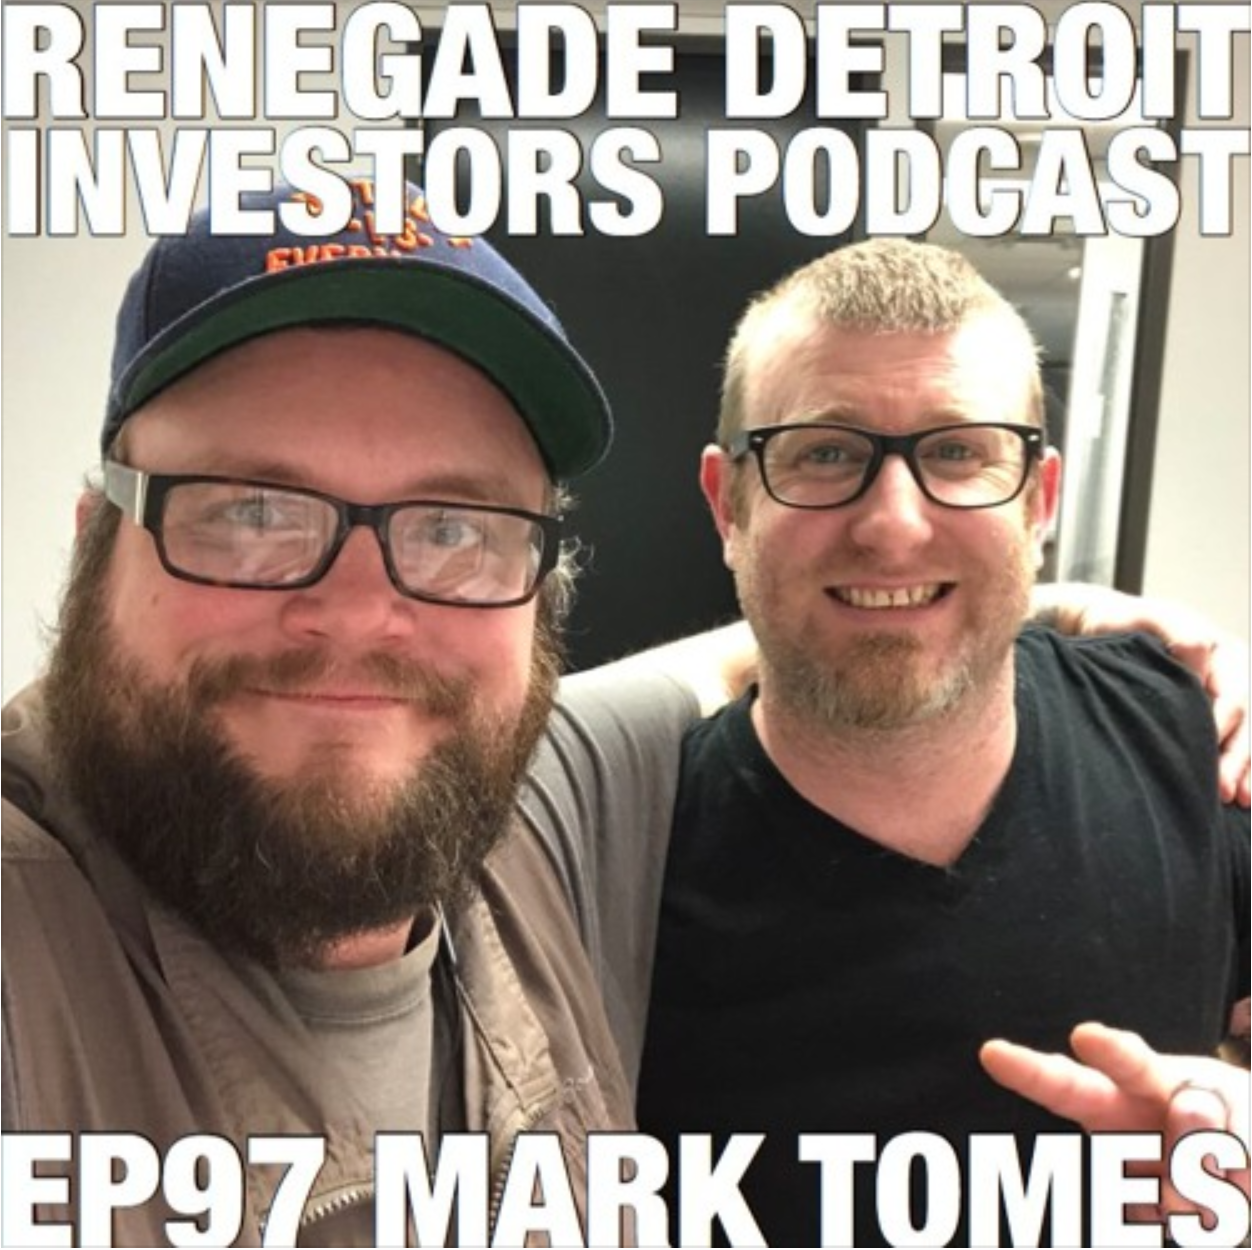 RDI Podcast Ep97 Mark Tomes